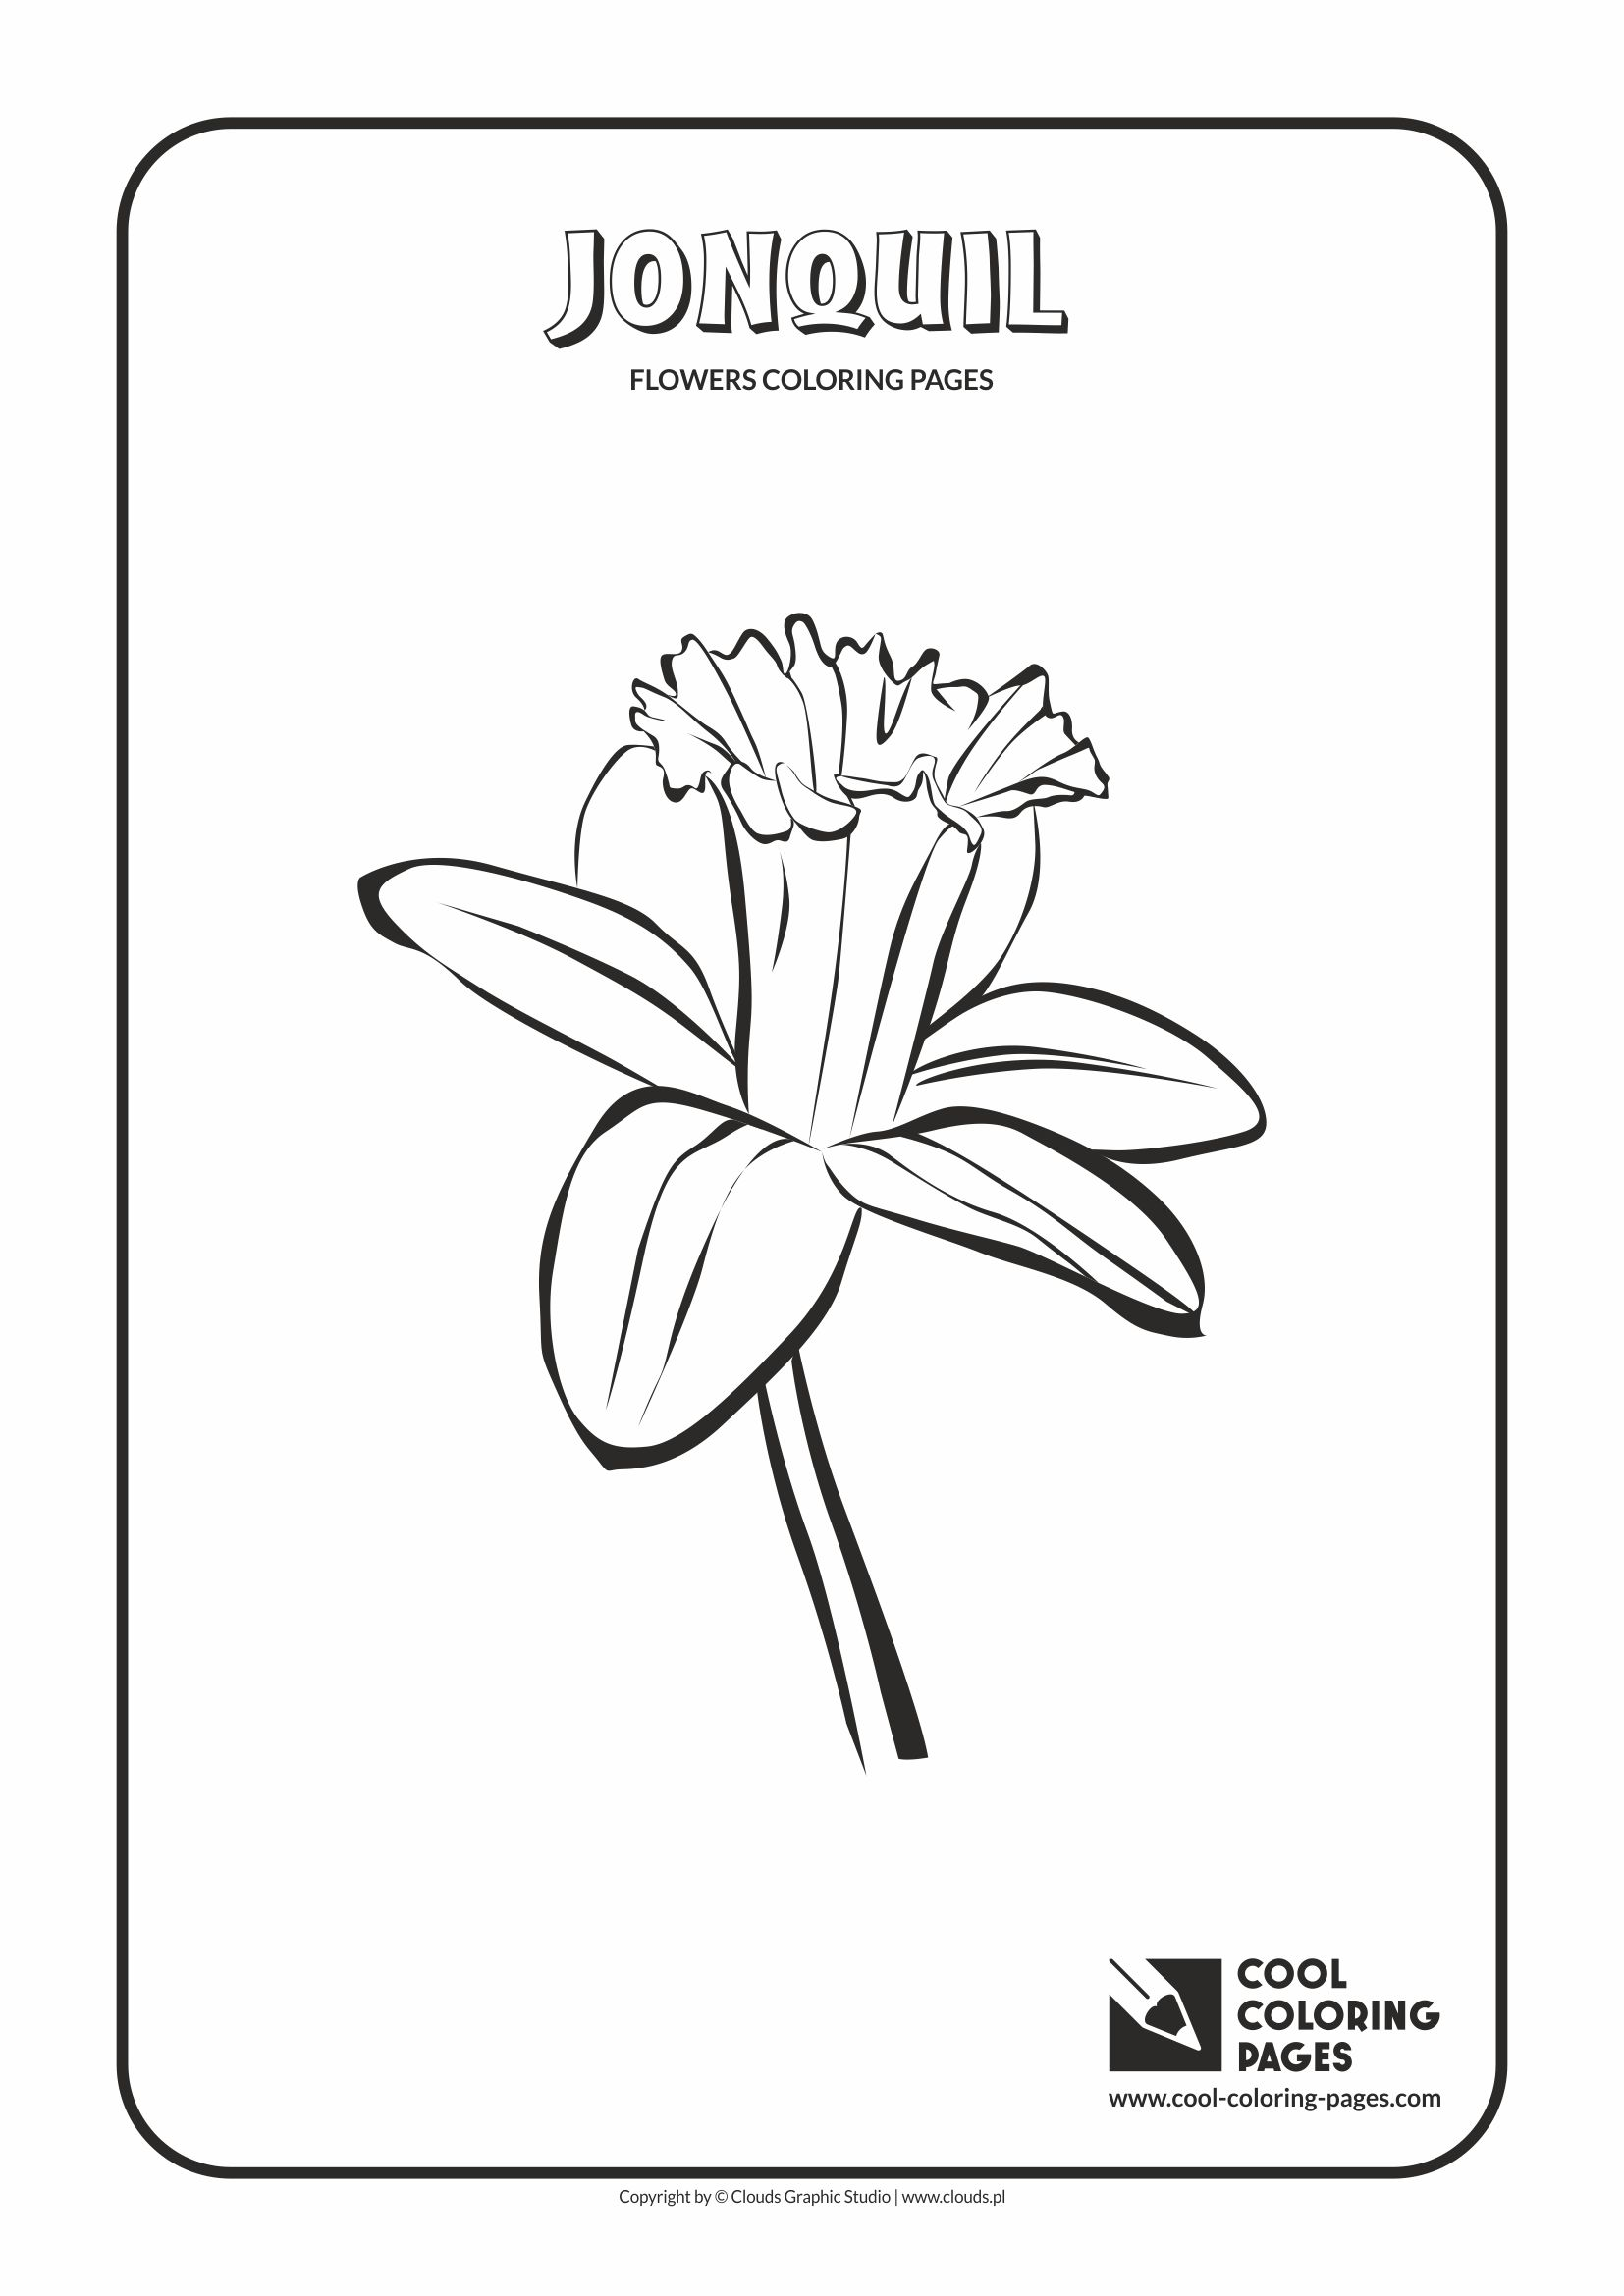 Cool Coloring Pages - Plants / Jonquil / Coloring page with jonquil